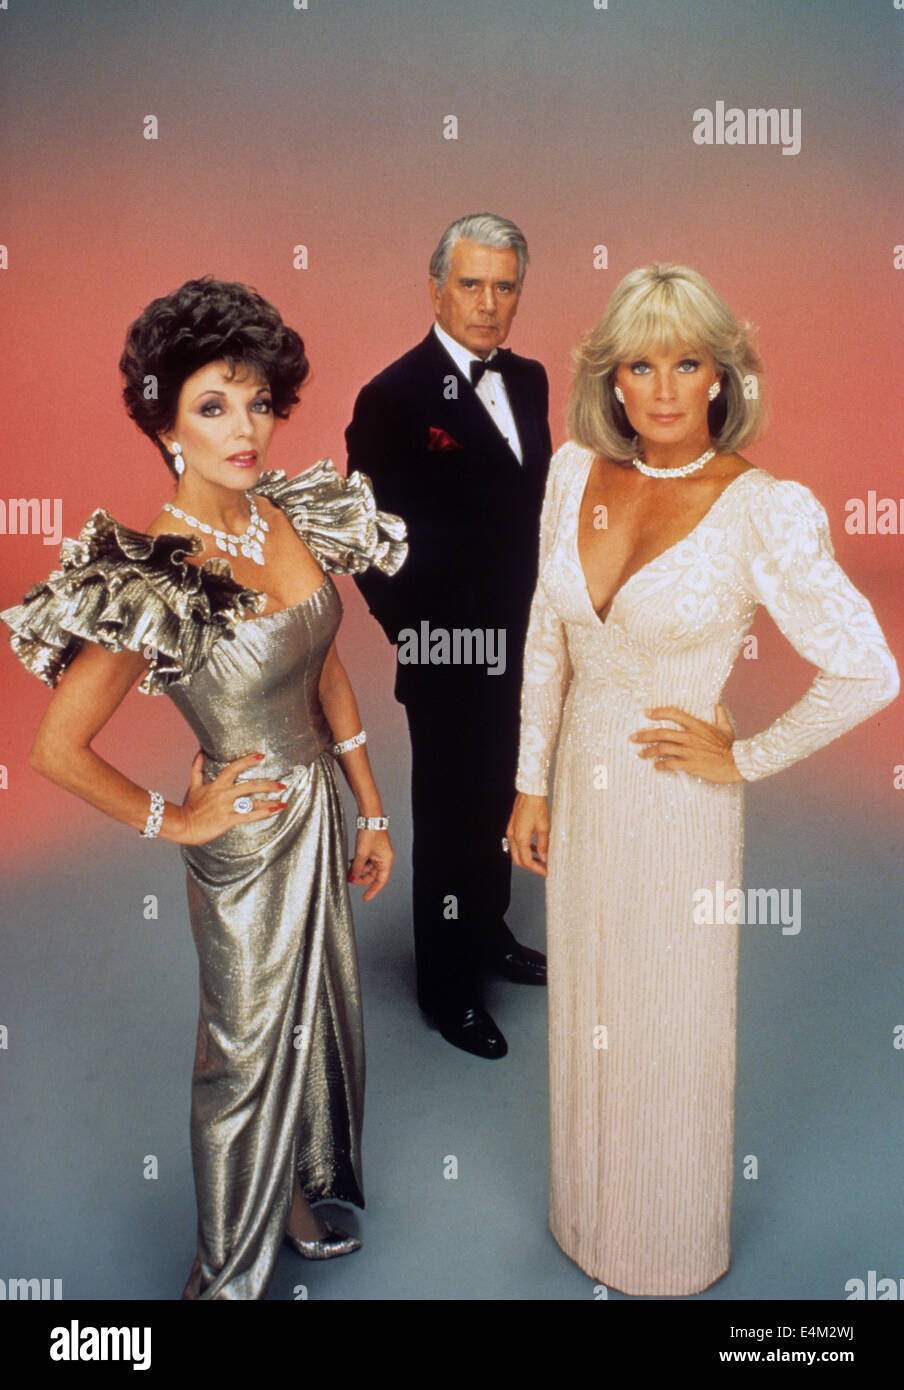 DYNASTY  Aaron Spelling US TV series (1981-89) from left: Joan Collins, John Forsythe and Linda Evans - Stock Image